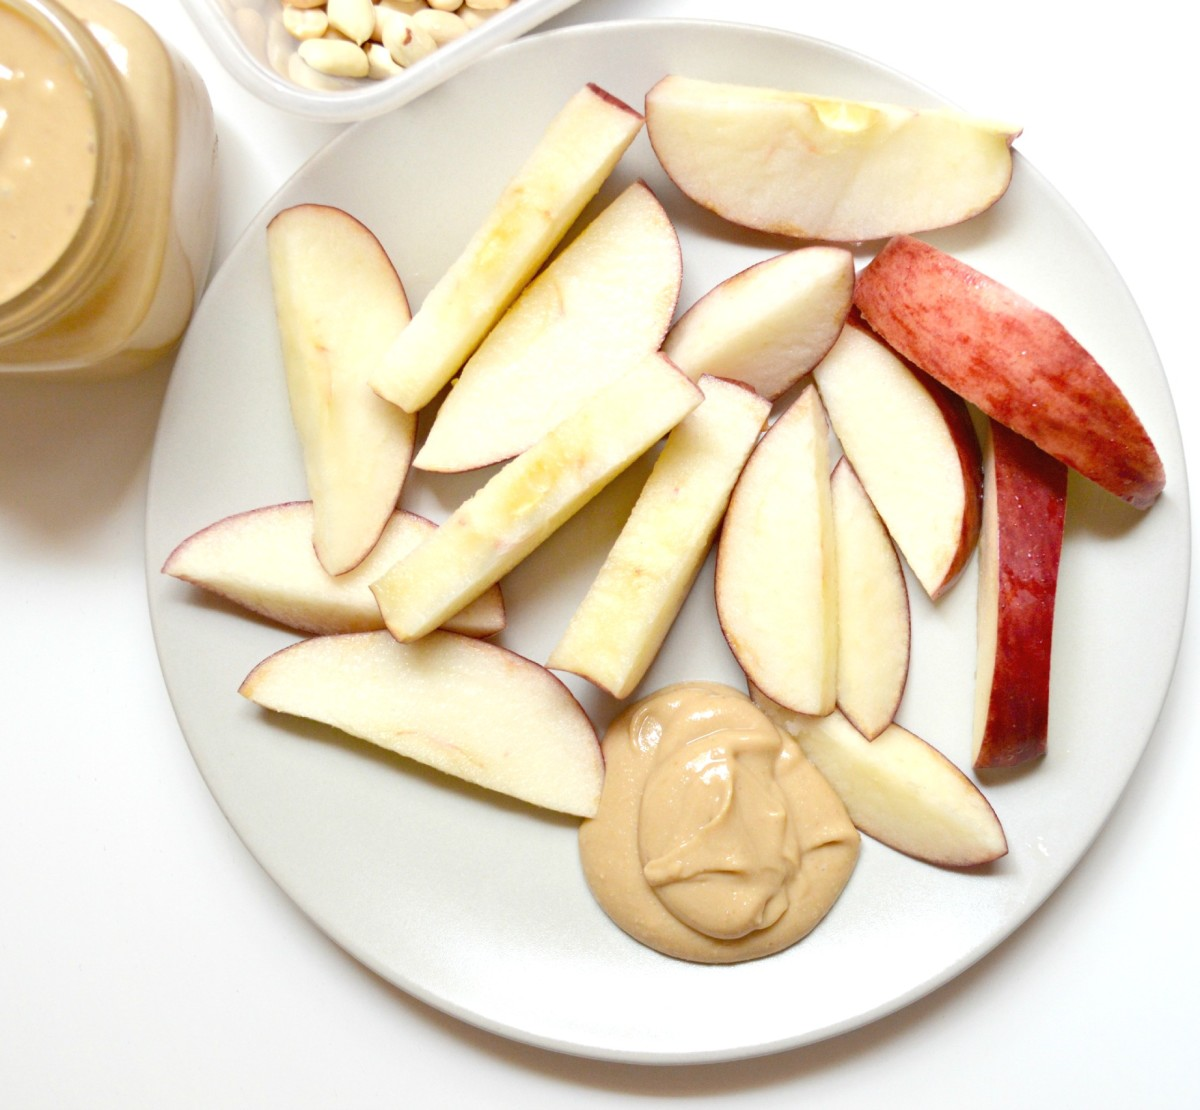 Peanut butter and apples?! My favorite healthy snack!